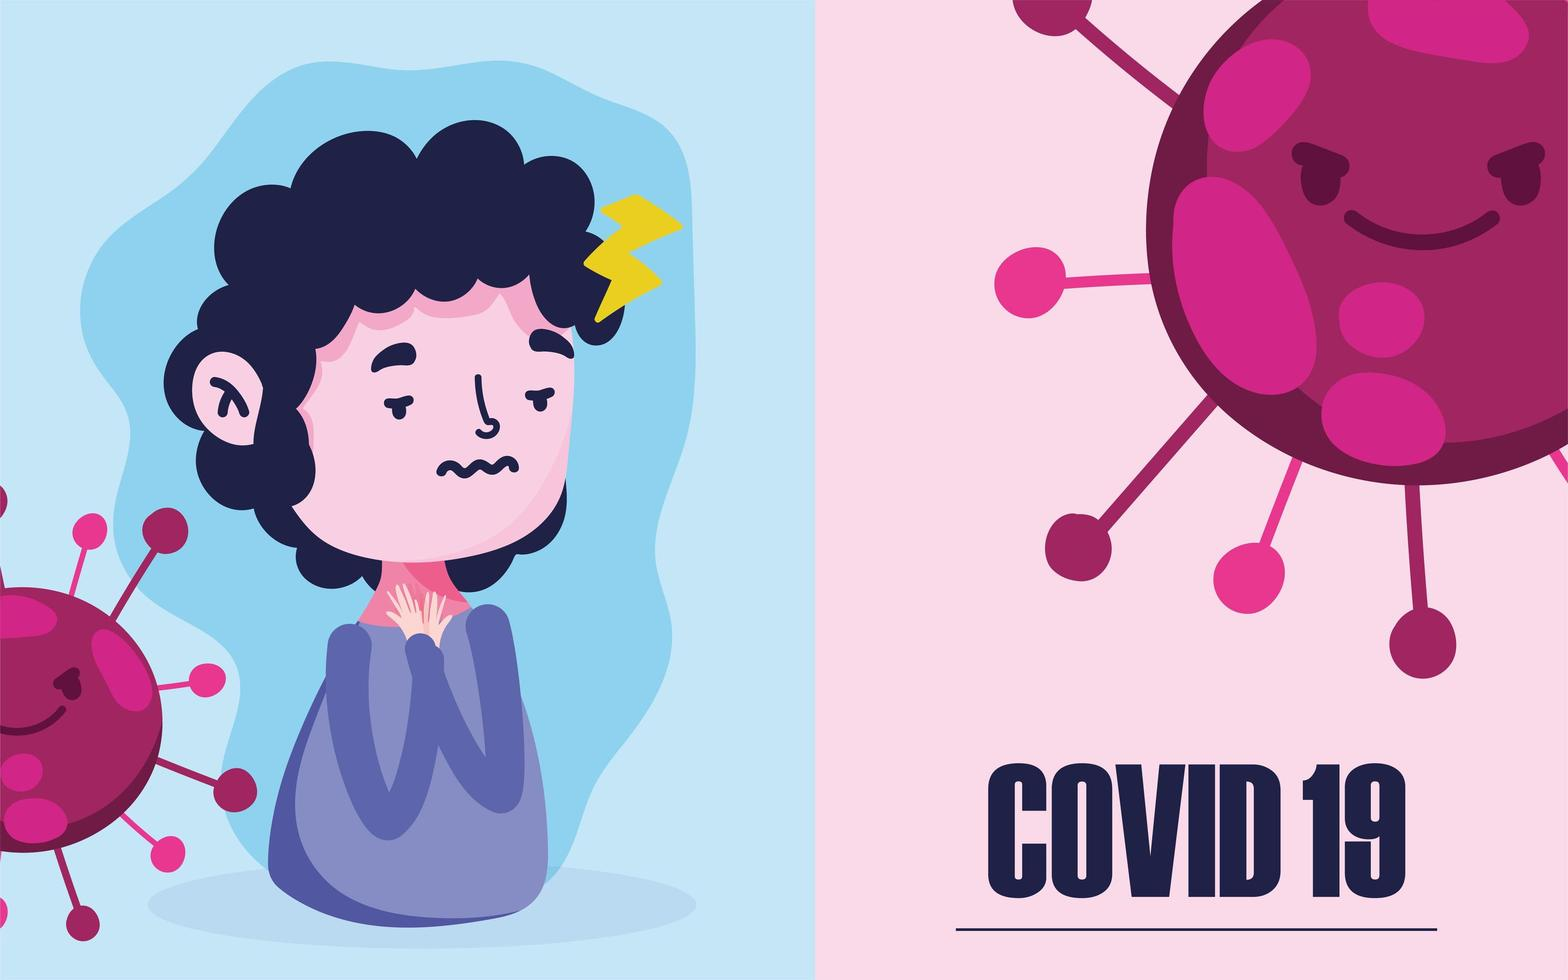 Covid 19 pandemic with boy with fever and headache vector